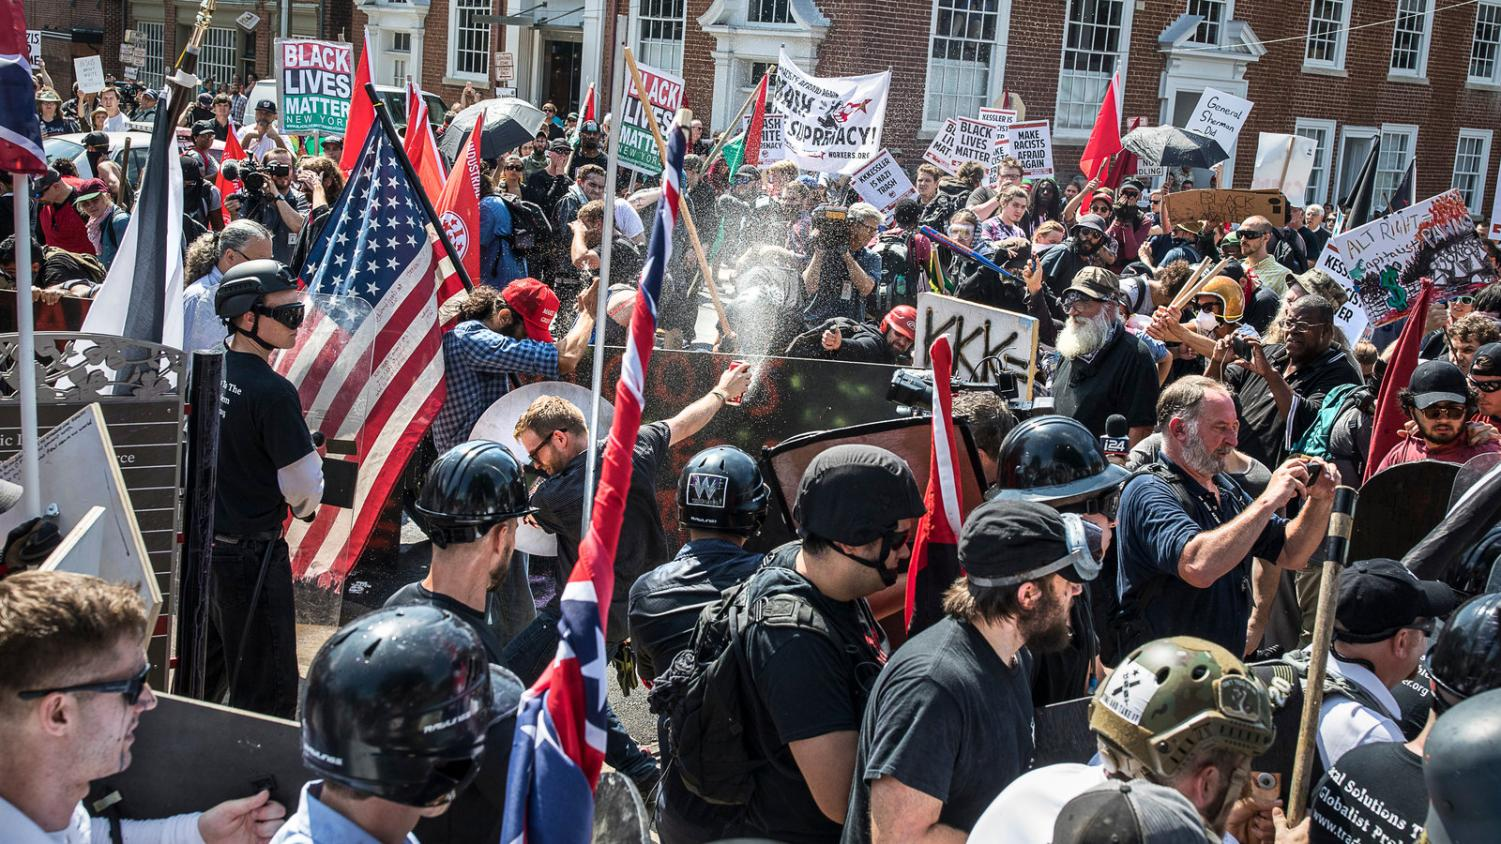 Extremists, neo-nazis and members of the alt-right hold a demonstration in Charlottesville, Virginia. Participators had used Facebook to organize the event and spread racist messages. According to a survey by the Anti-Defamation League, one-third of social media users have been the targets of online hate speech.